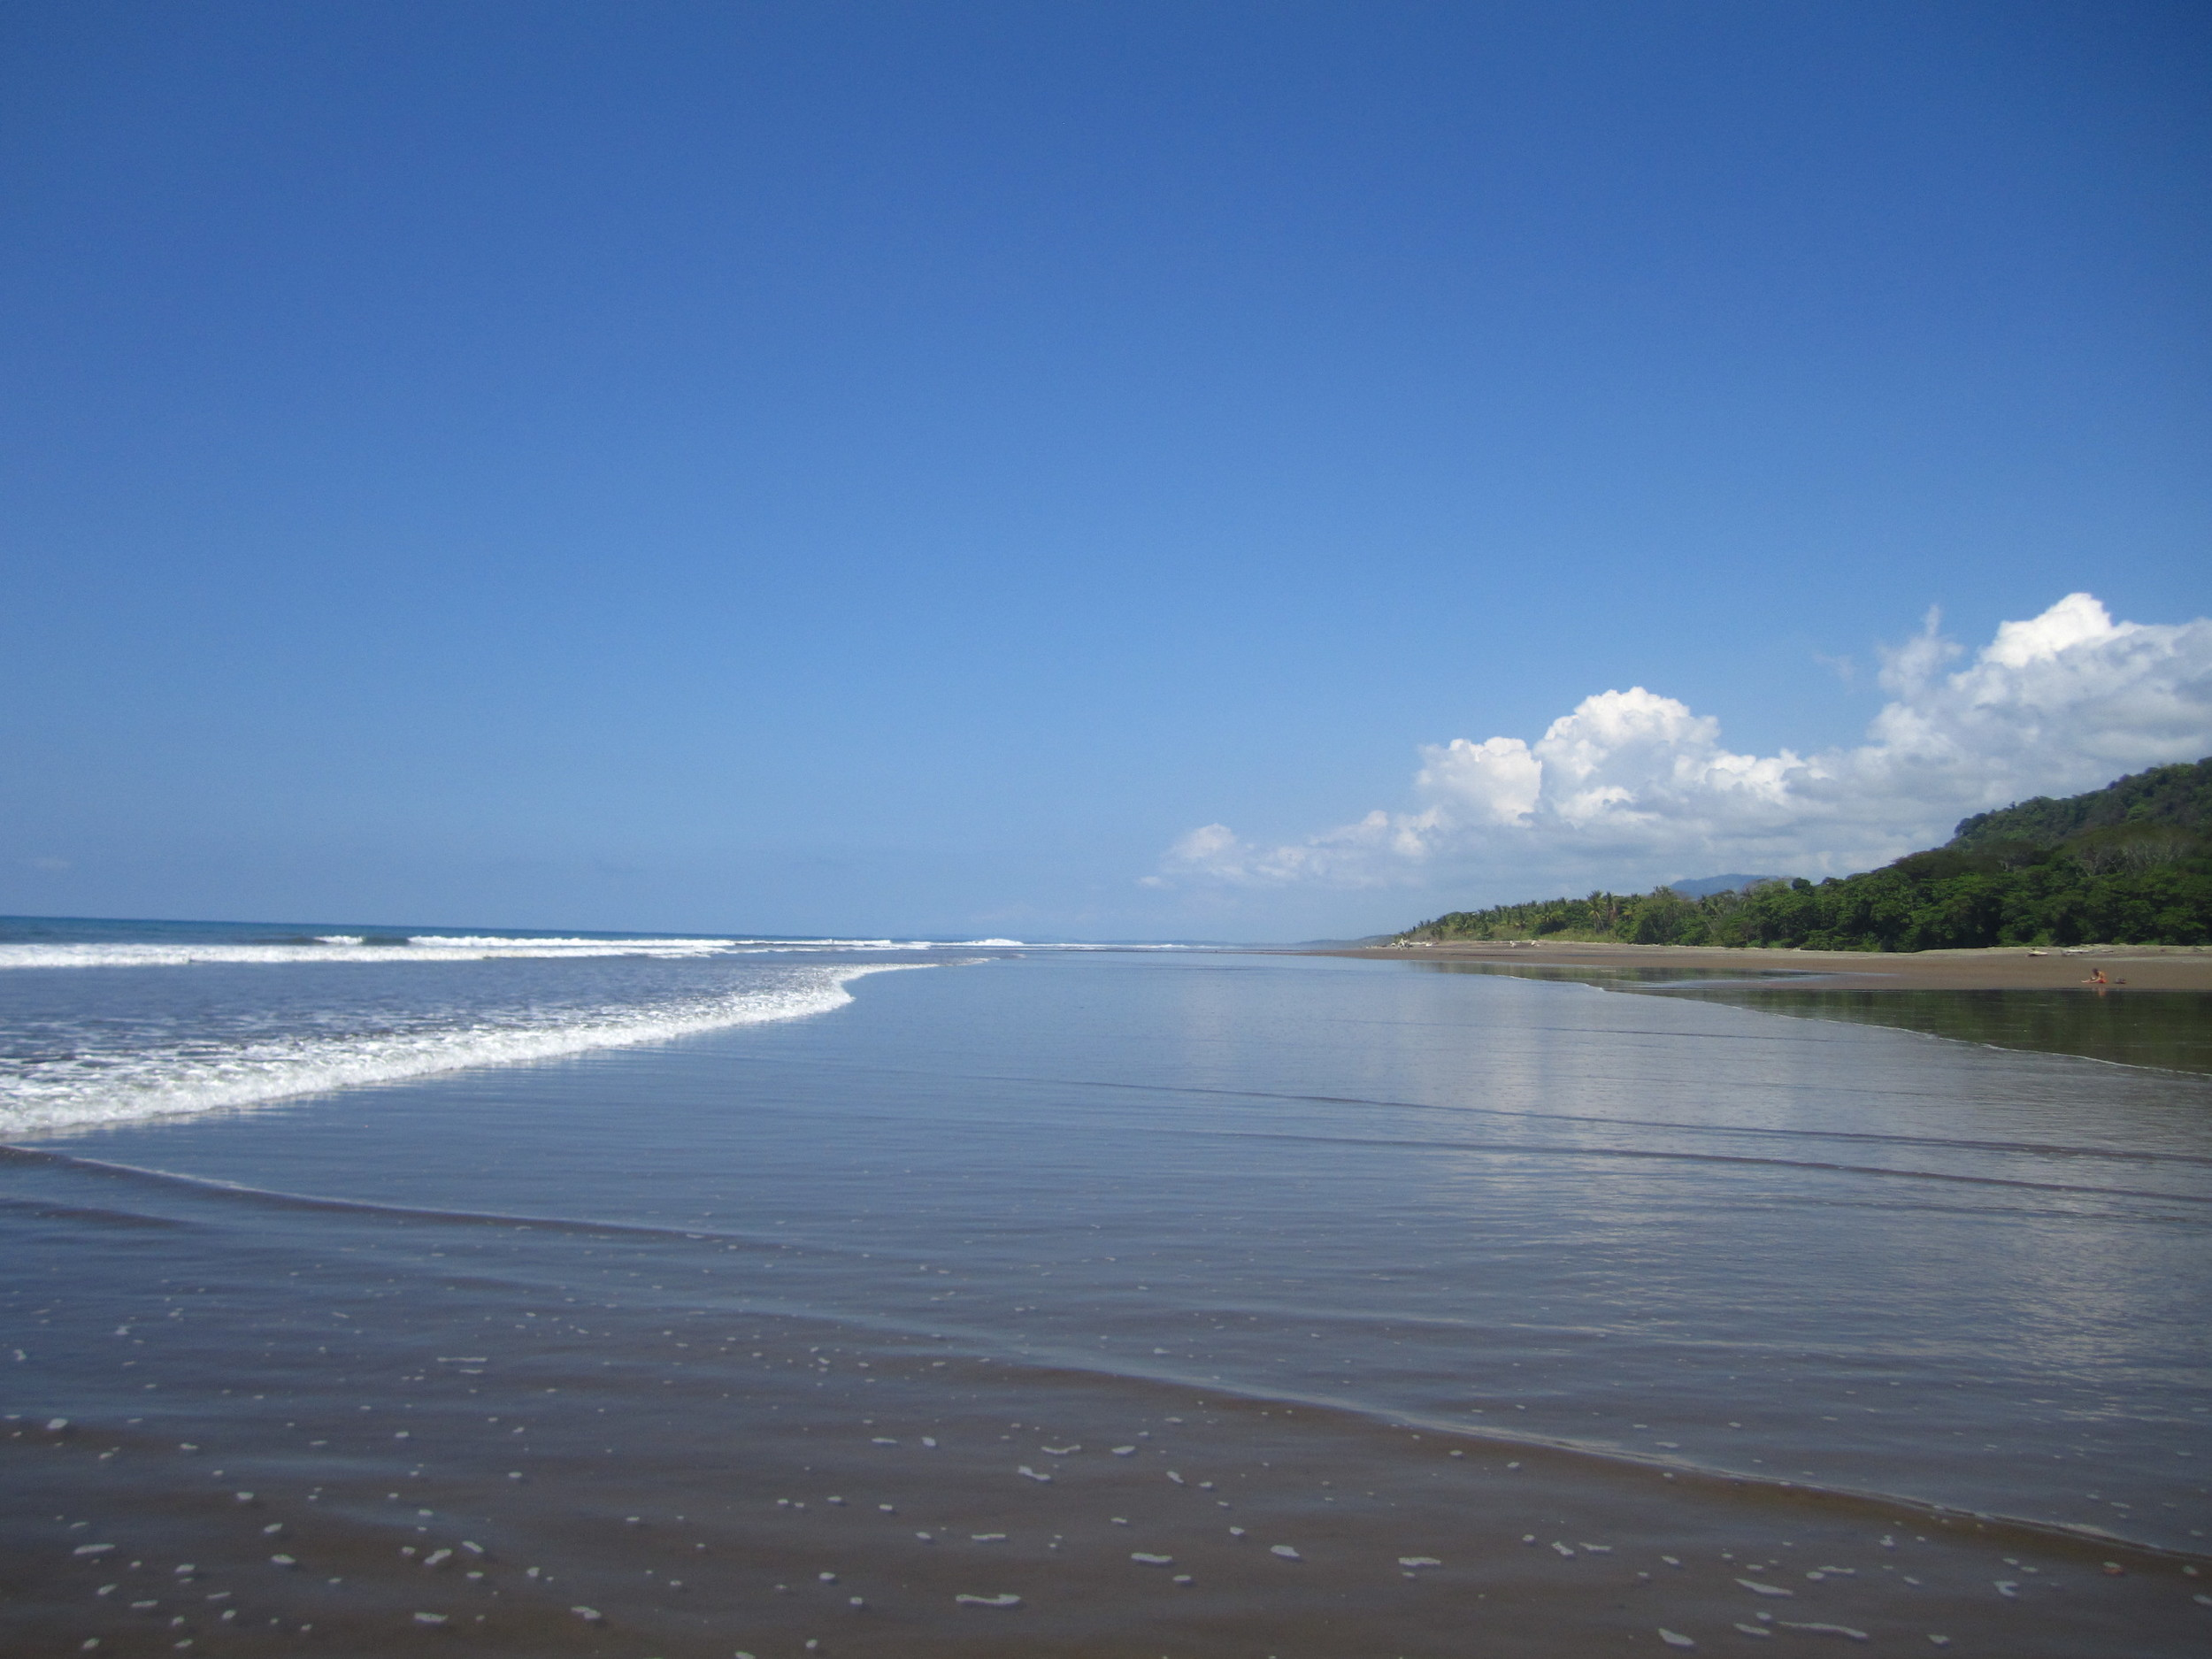 One of the many beautiful Costa Rican beaches.